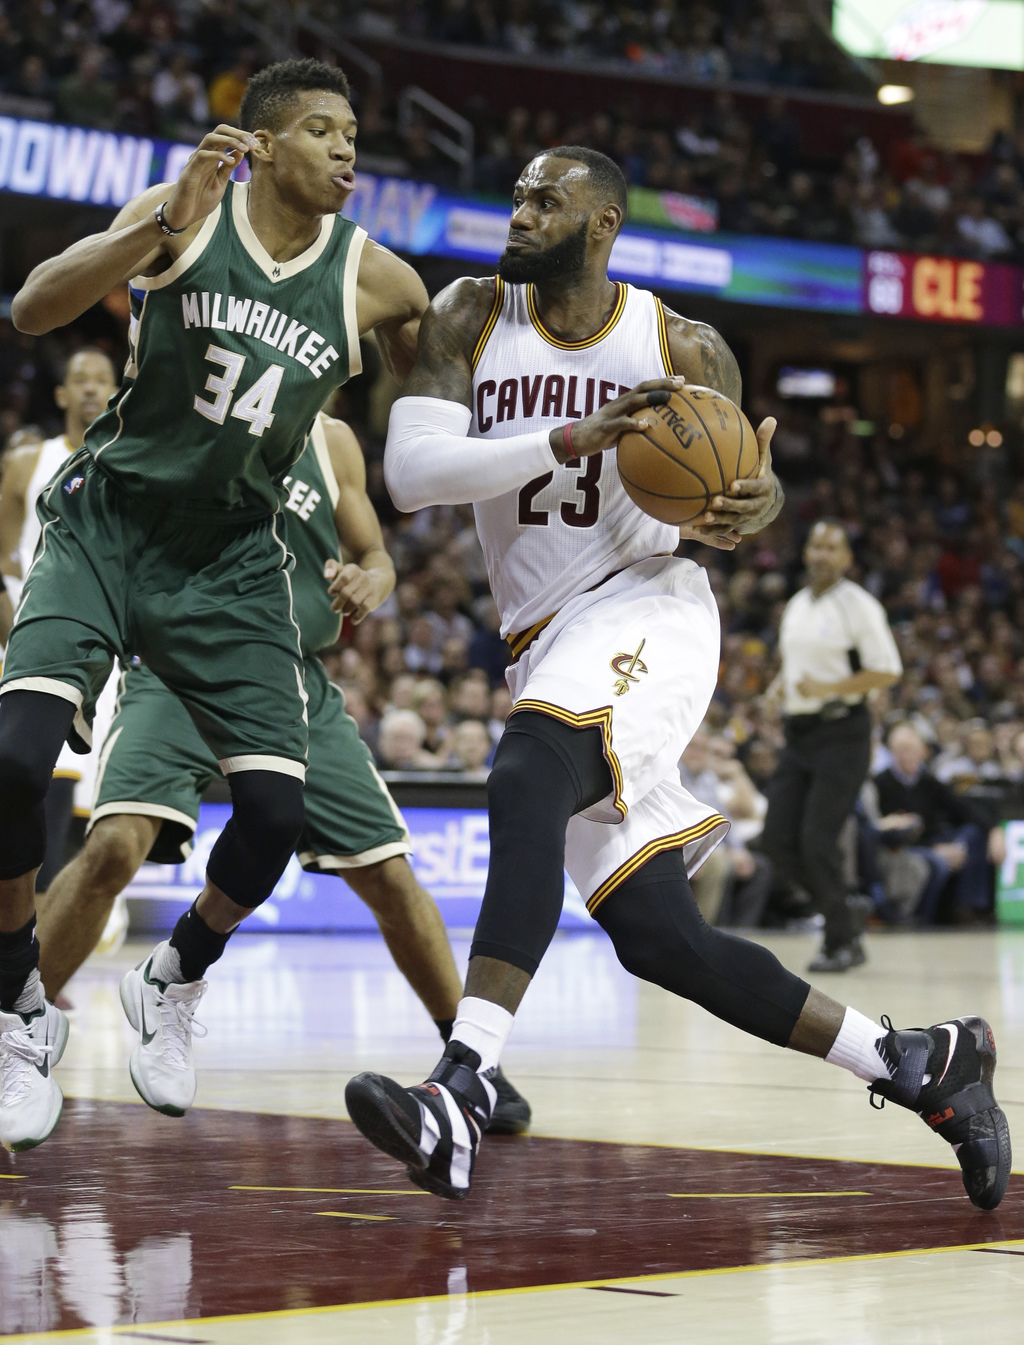 Cleveland Cavaliers' LeBron James (23) drives past Milwaukee Bucks' Giannis Antetokounmpo (34) during the first half of an NBA basketba...